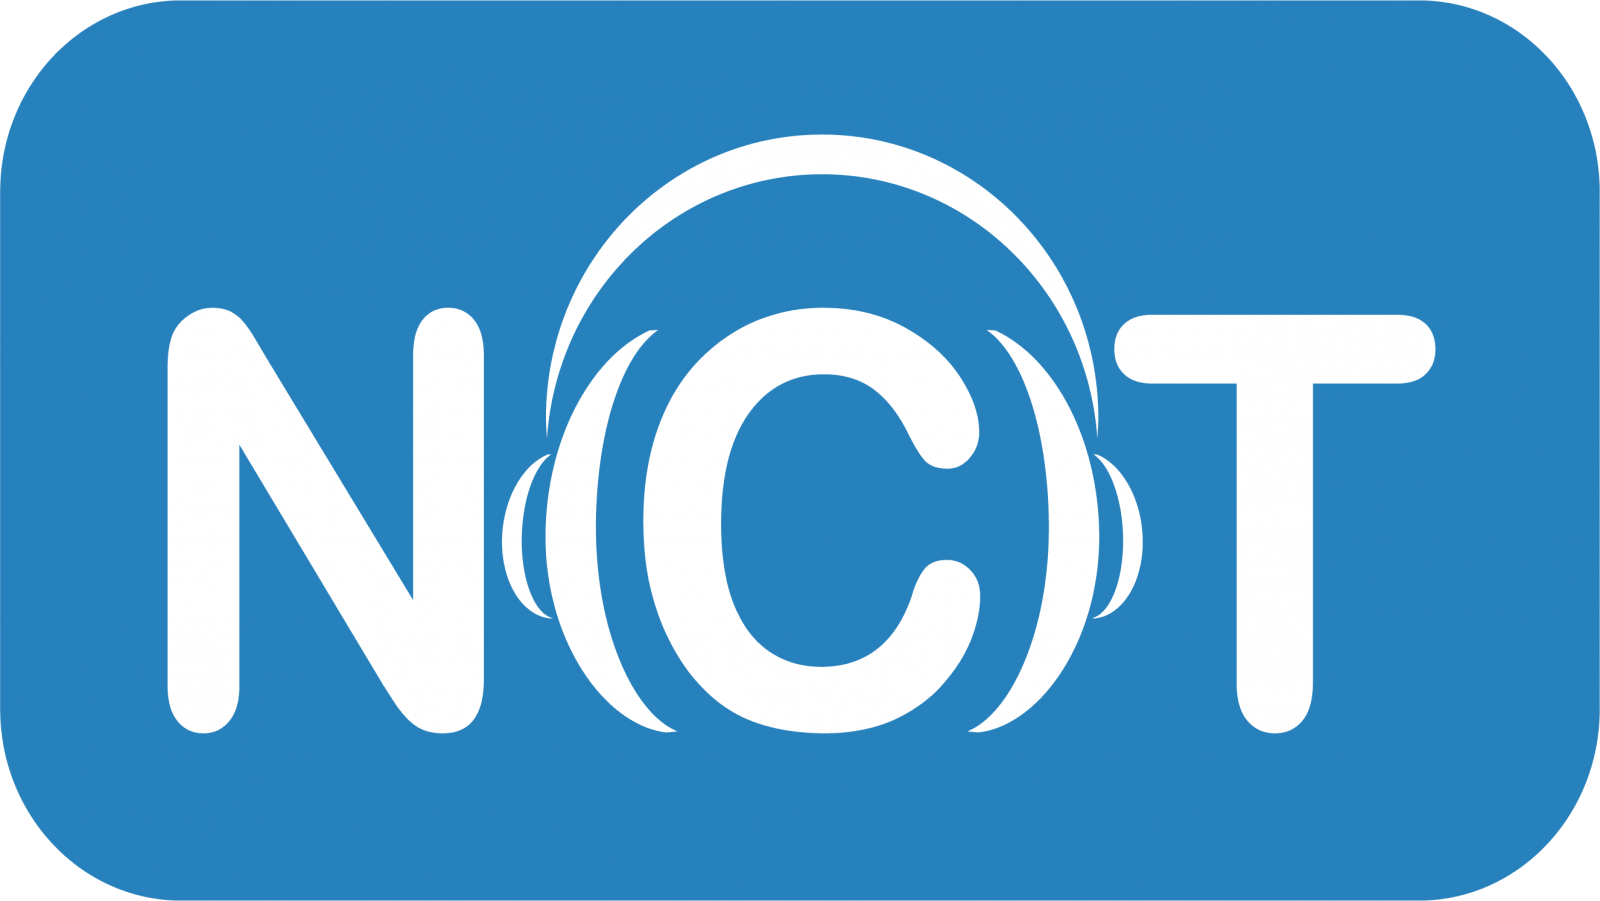 logo-nct.png